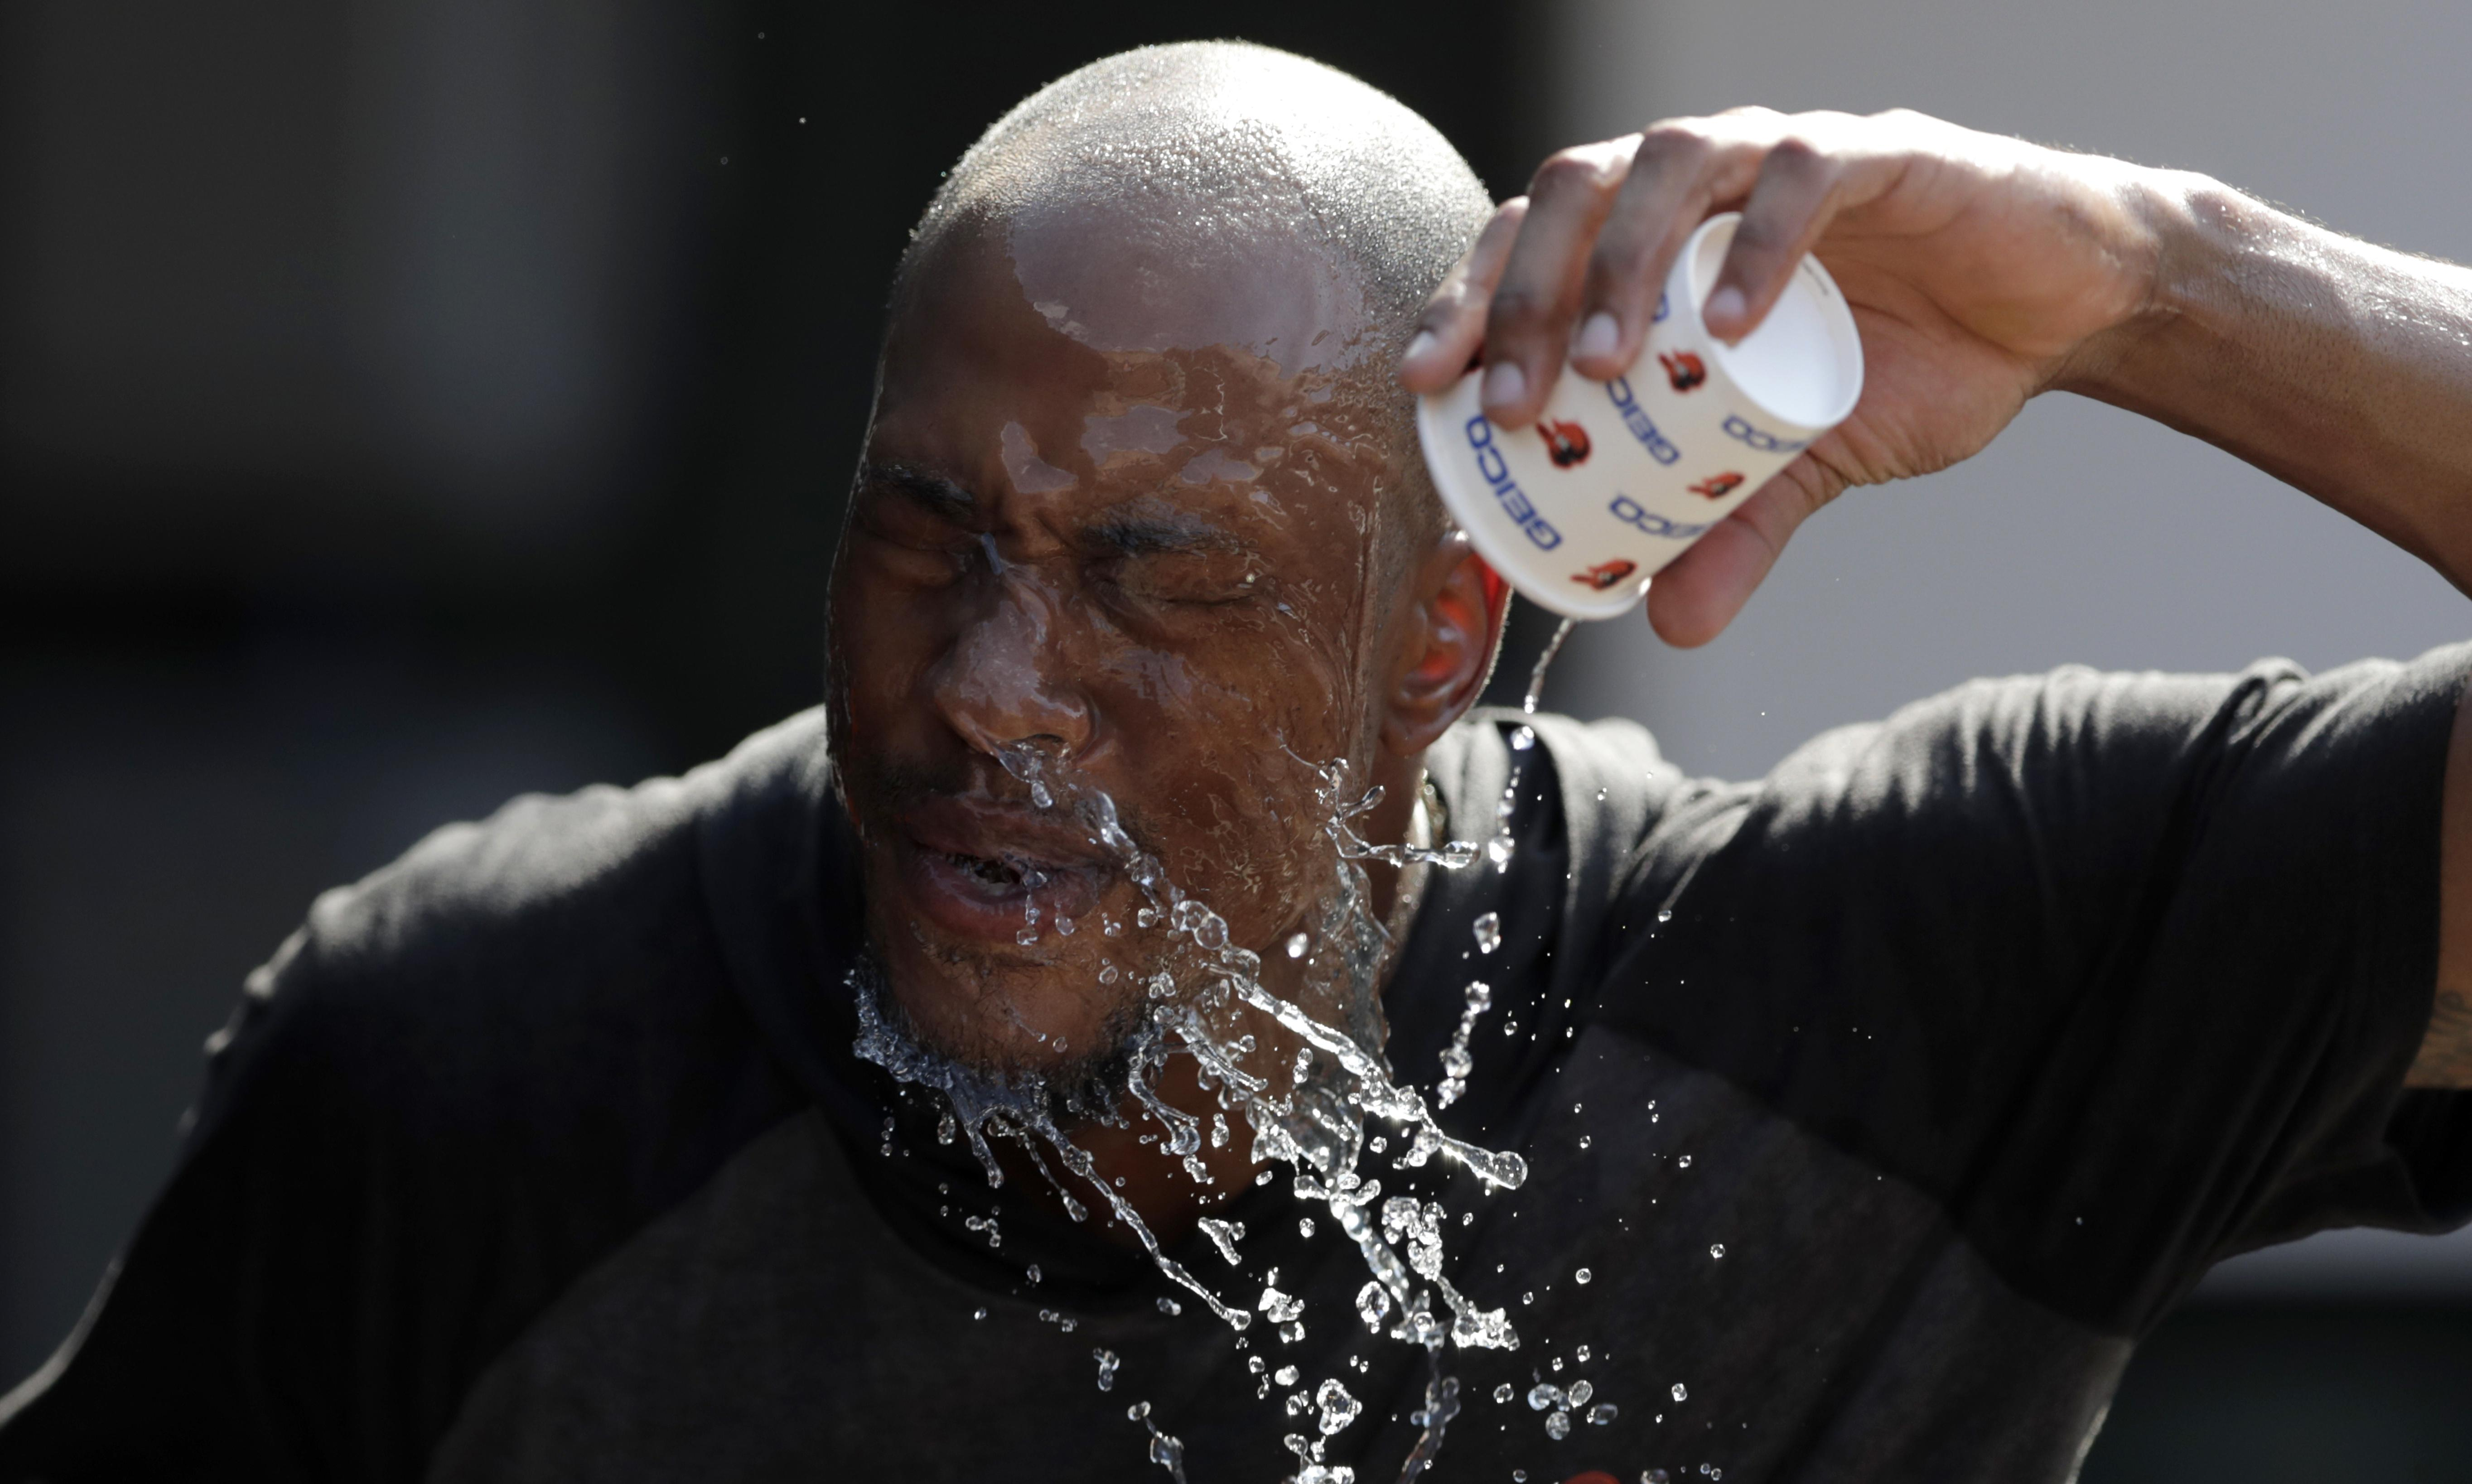 'Like pitching in a rainforest': MLB fans and players struggle in brutal heatwave